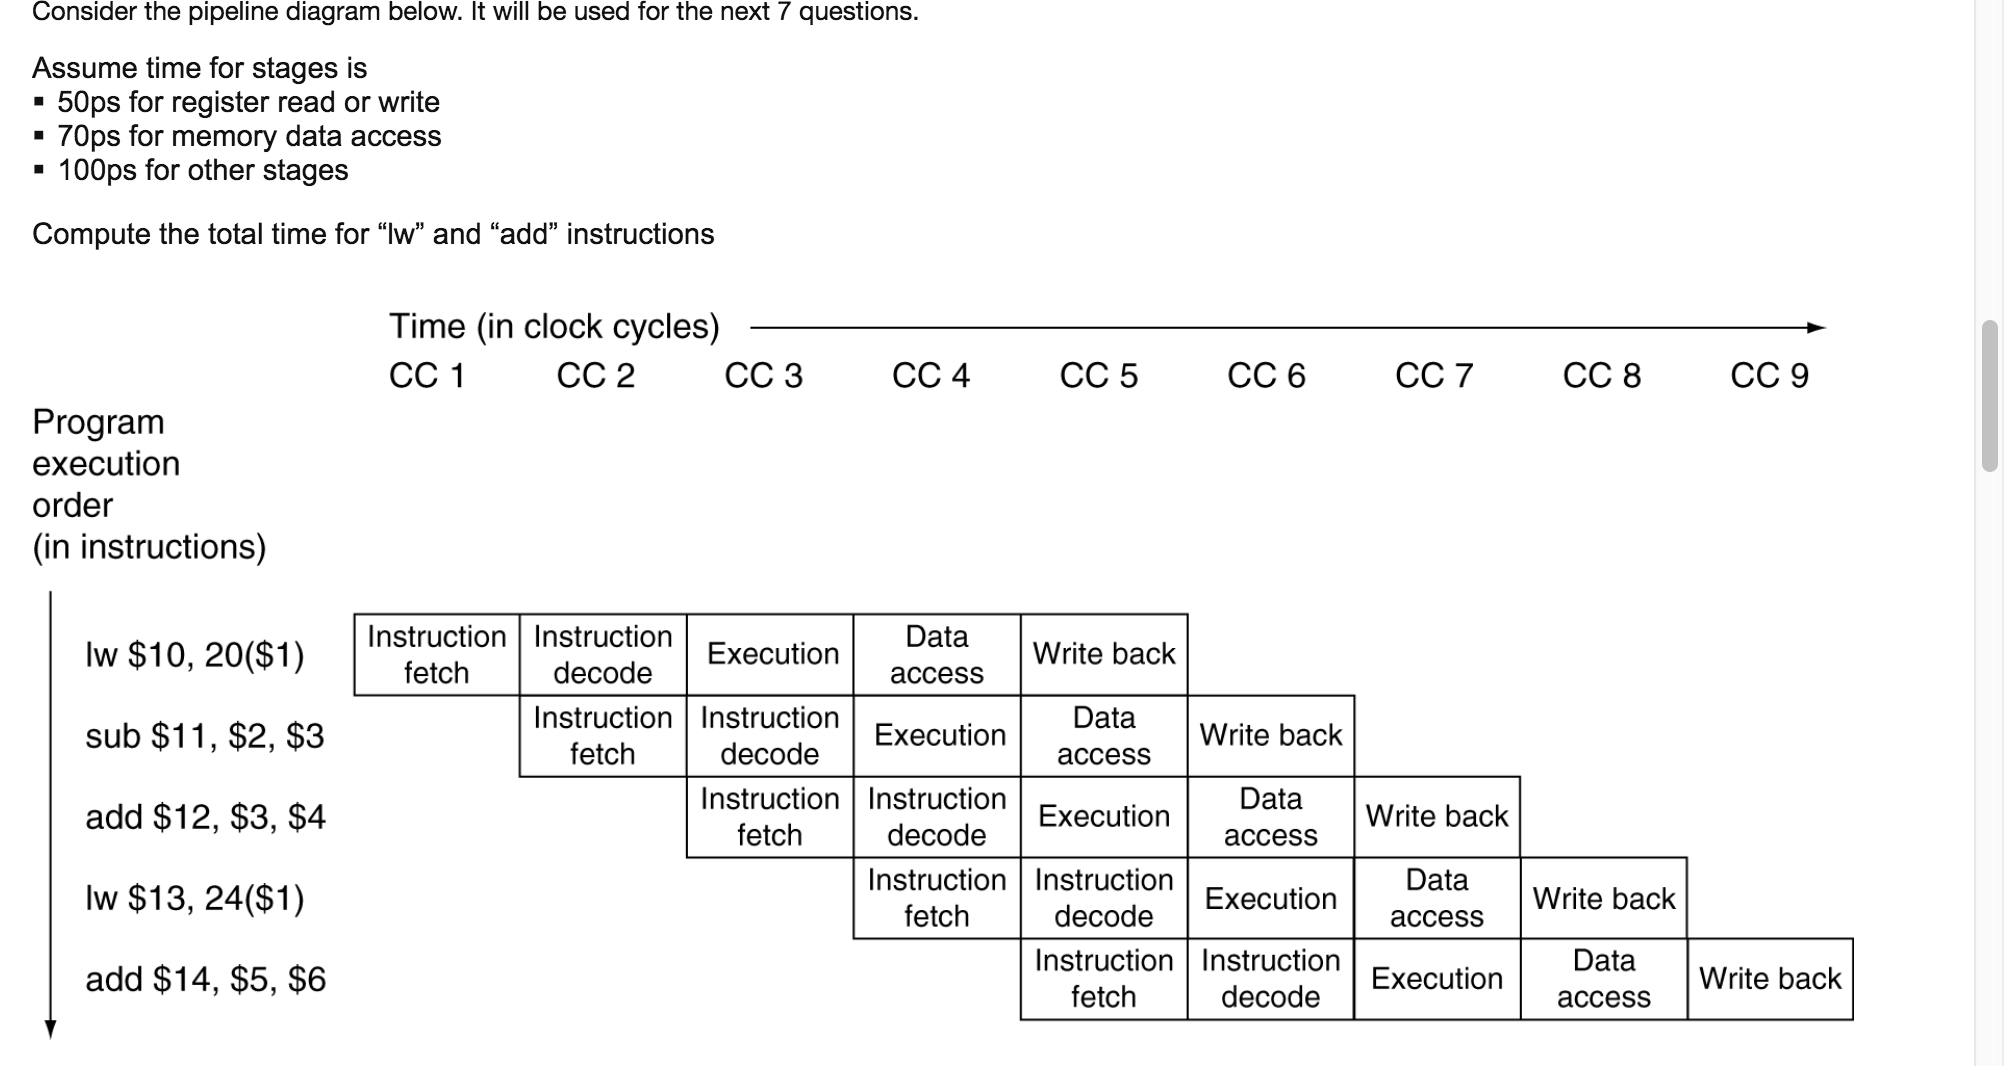 Solved Question 2 For The Same Pipeline Diagram If Each